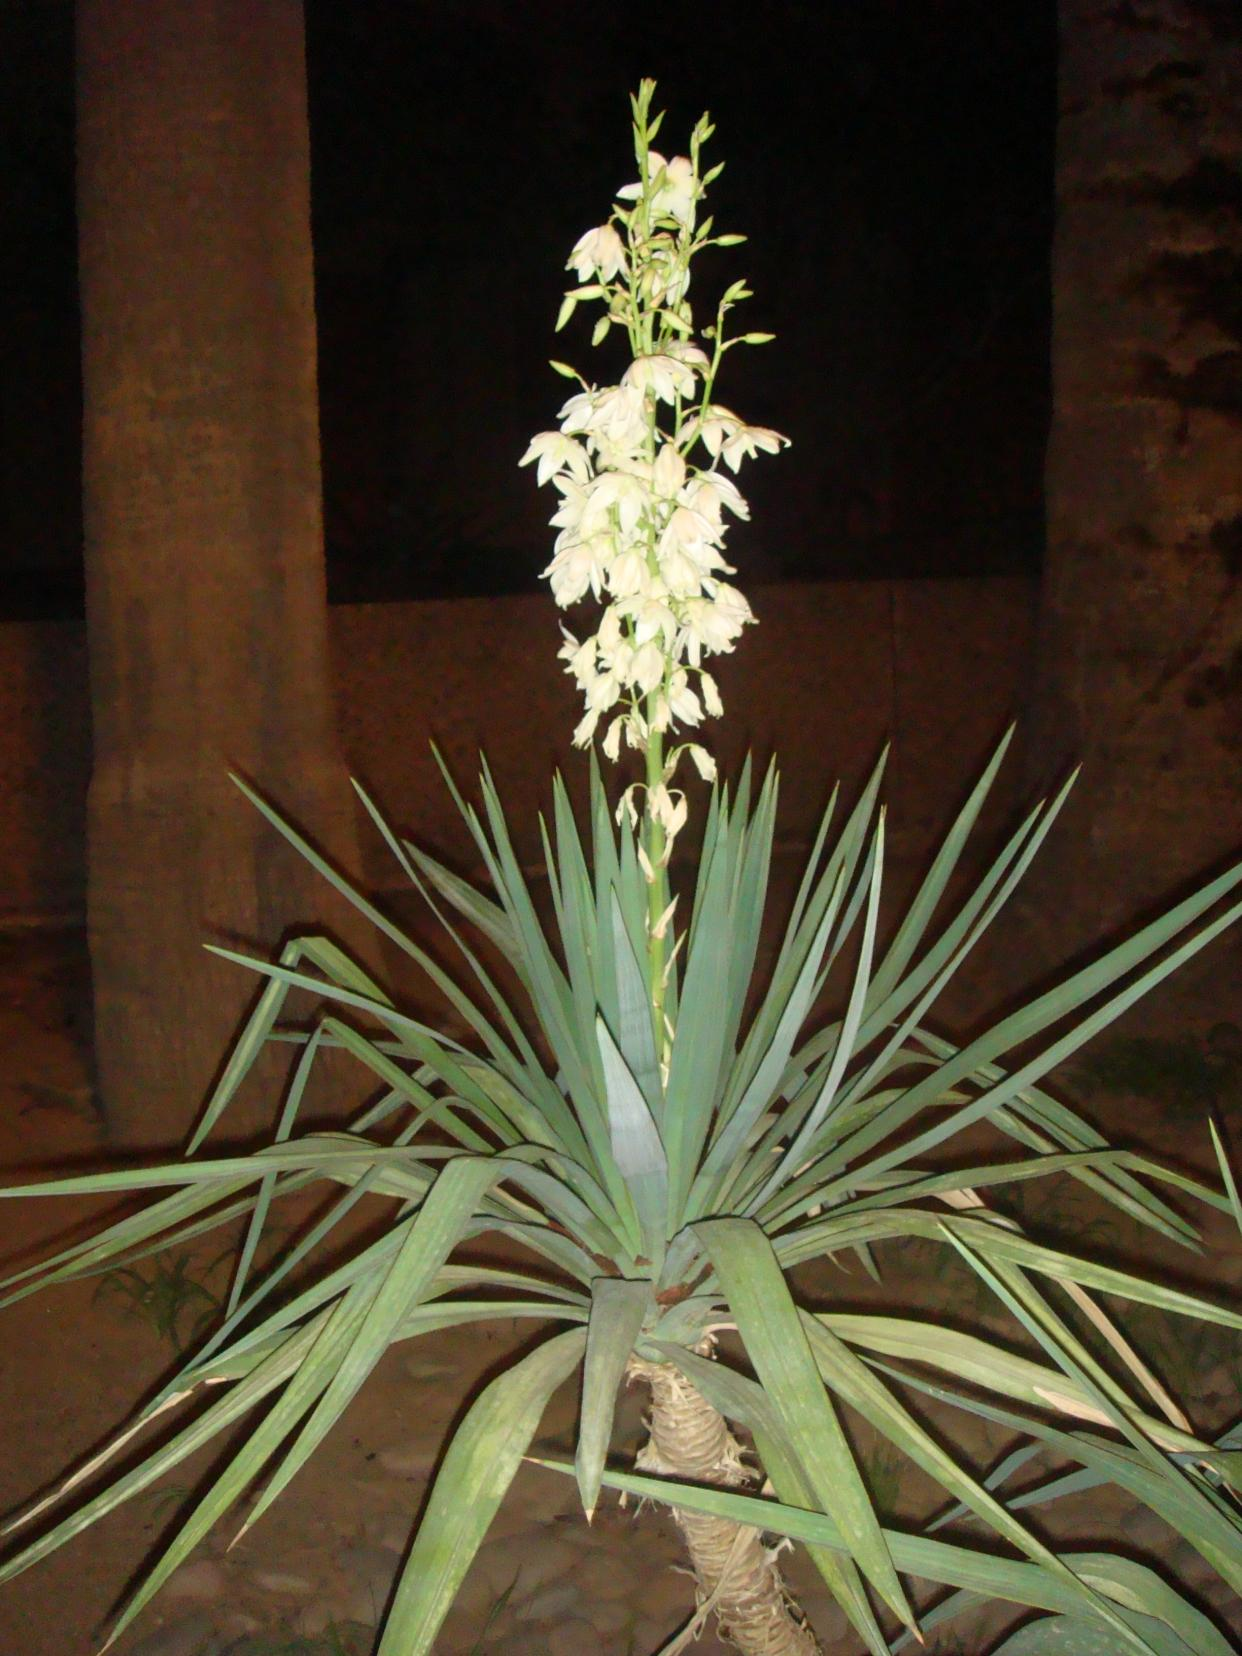 Yucca Plant Care Tips Growing Advice: How To Grow And Care For Yucca